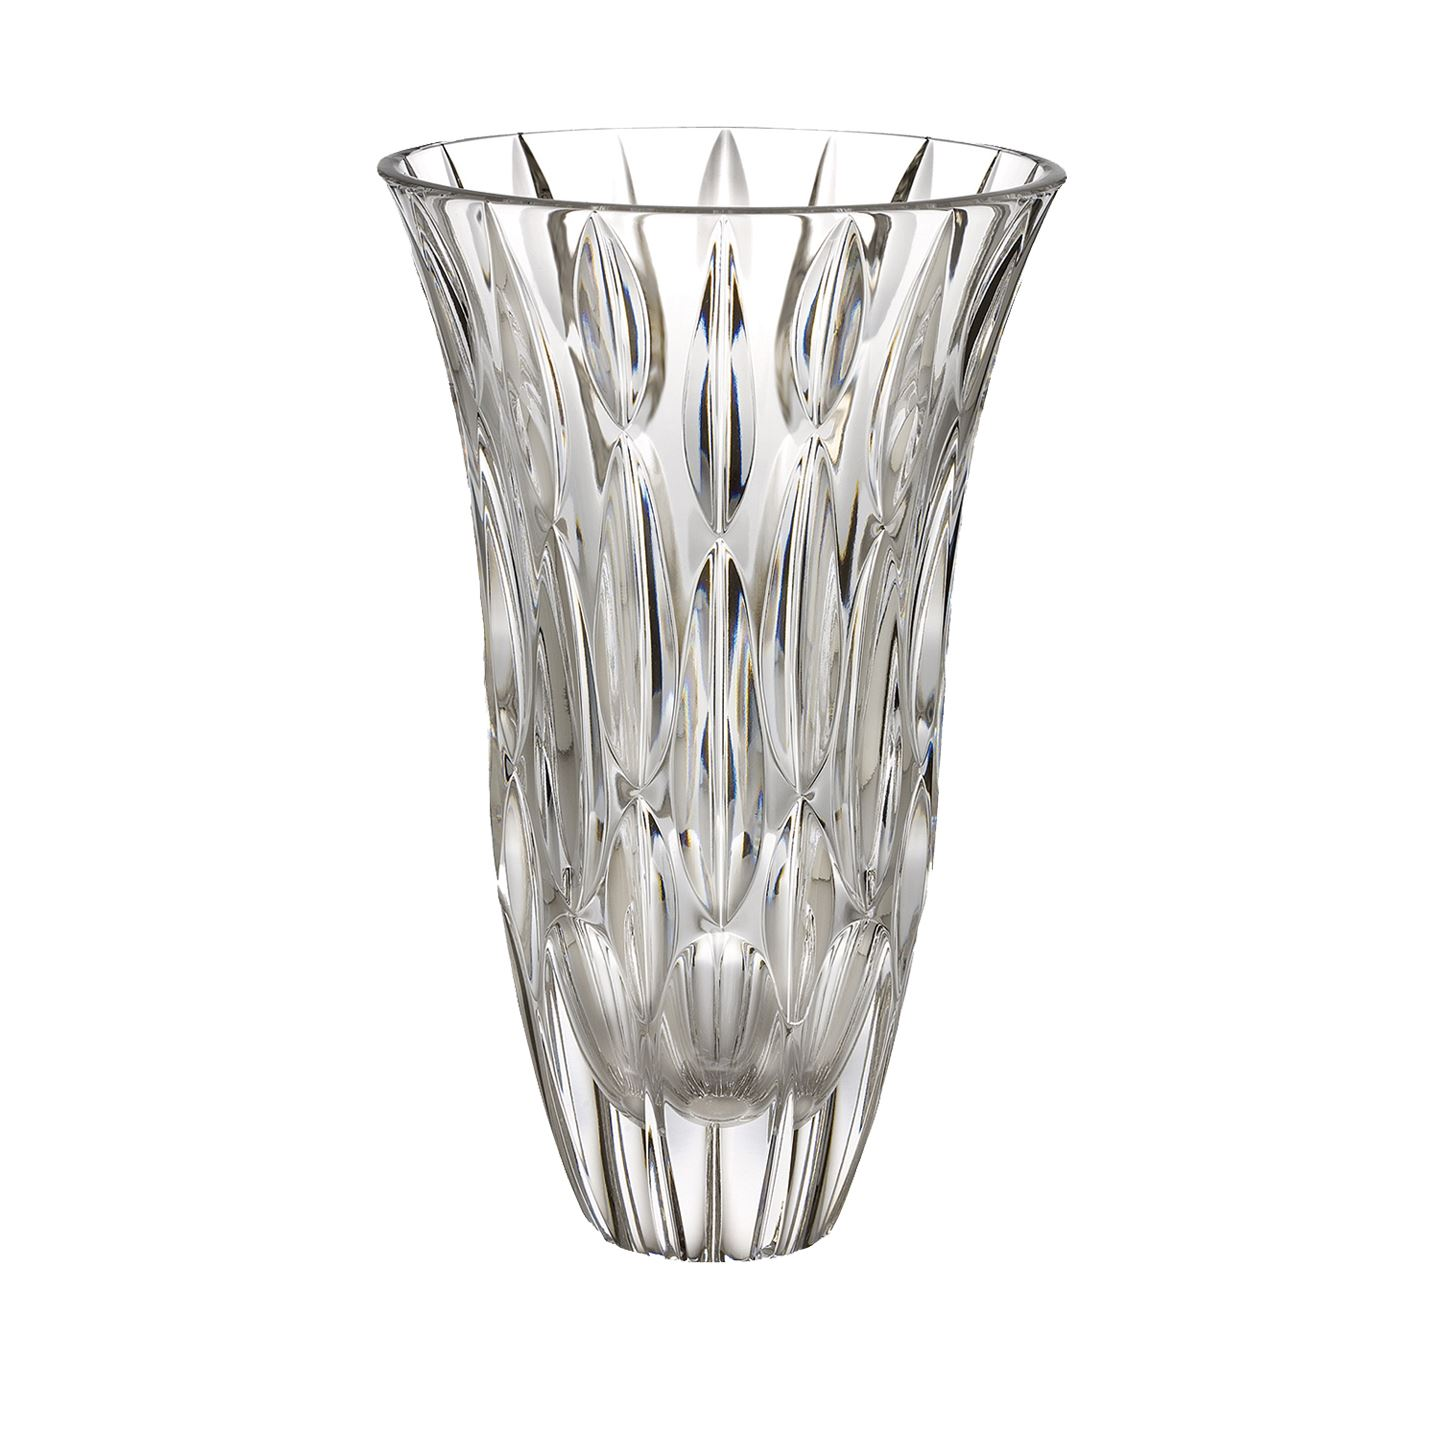 Marquis by Waterford Rainfall 23cm Vase | Crystal Glass